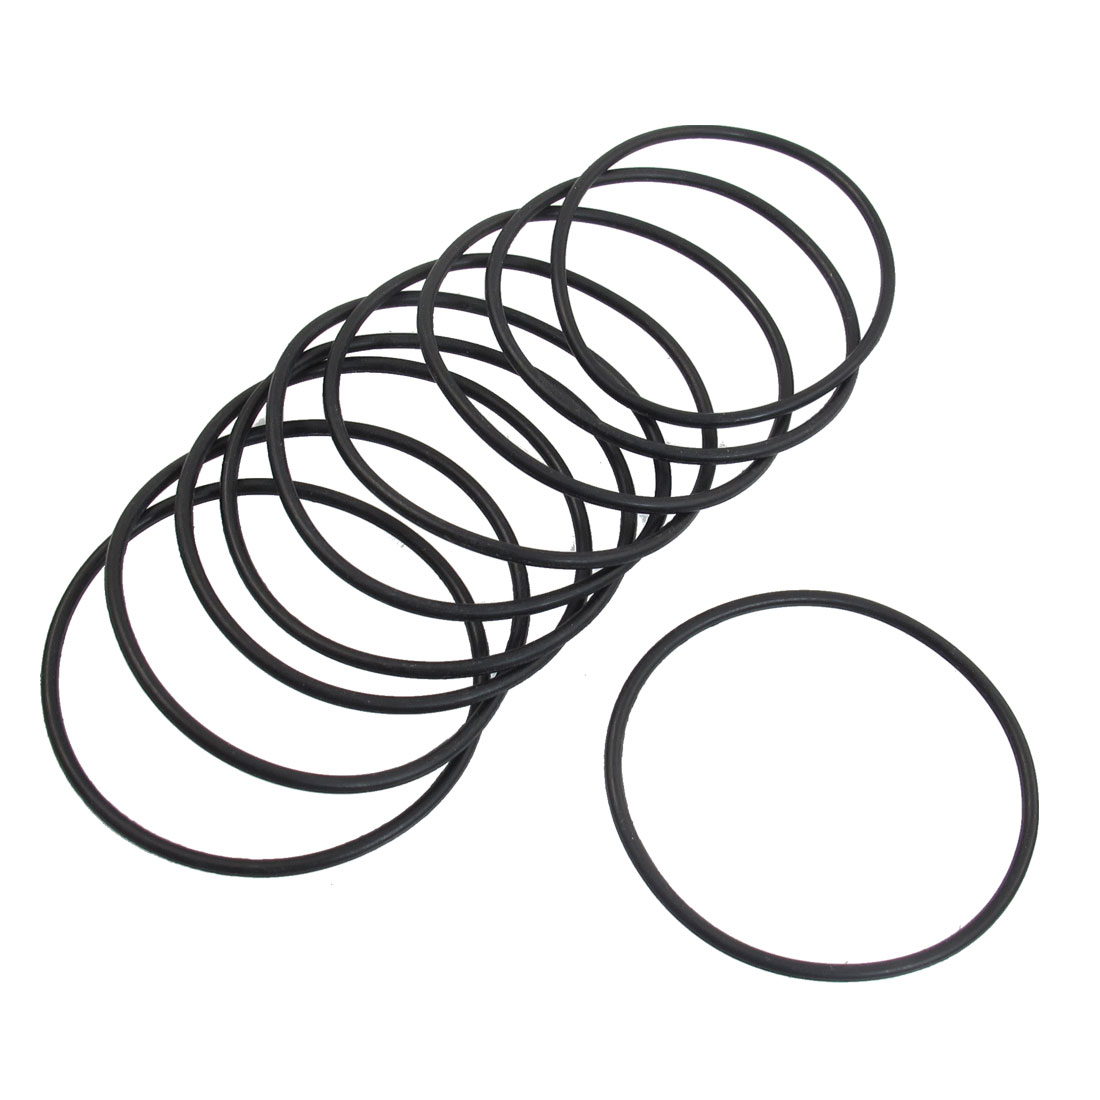 10 Pcs 50mm x 2mm Rubber Sealing Oil Filter O Rings Gaskets